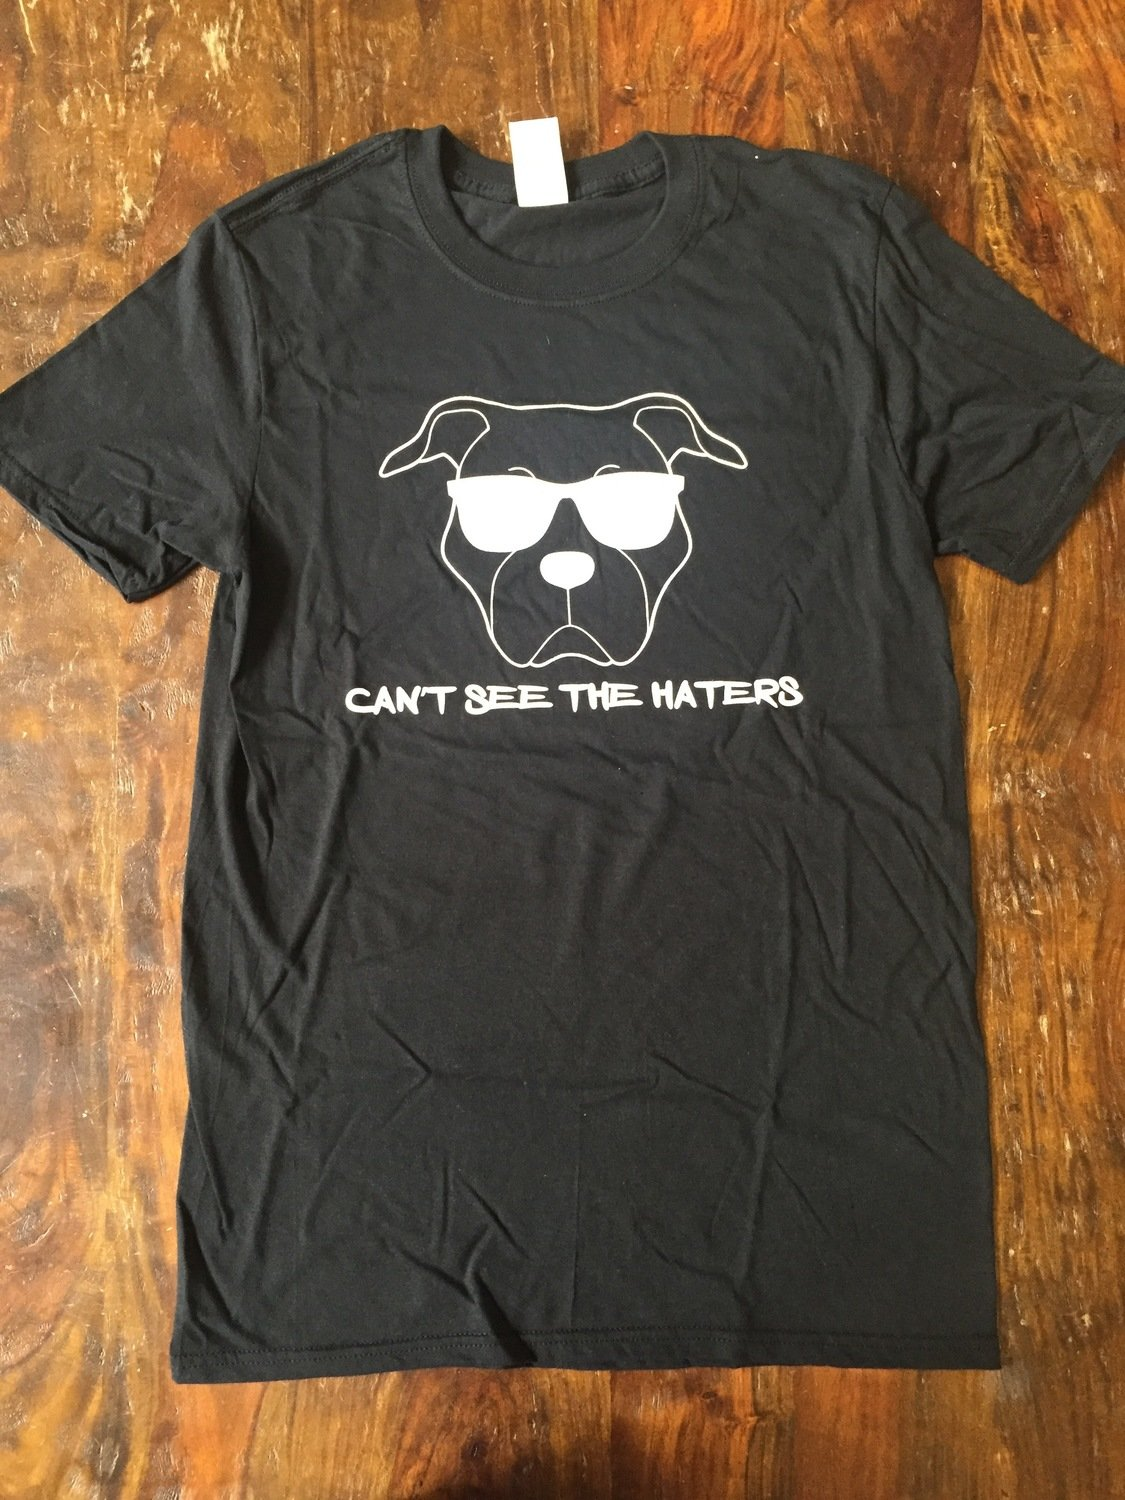 Mens Black T-Shirt- Can't See the Haters - Medium